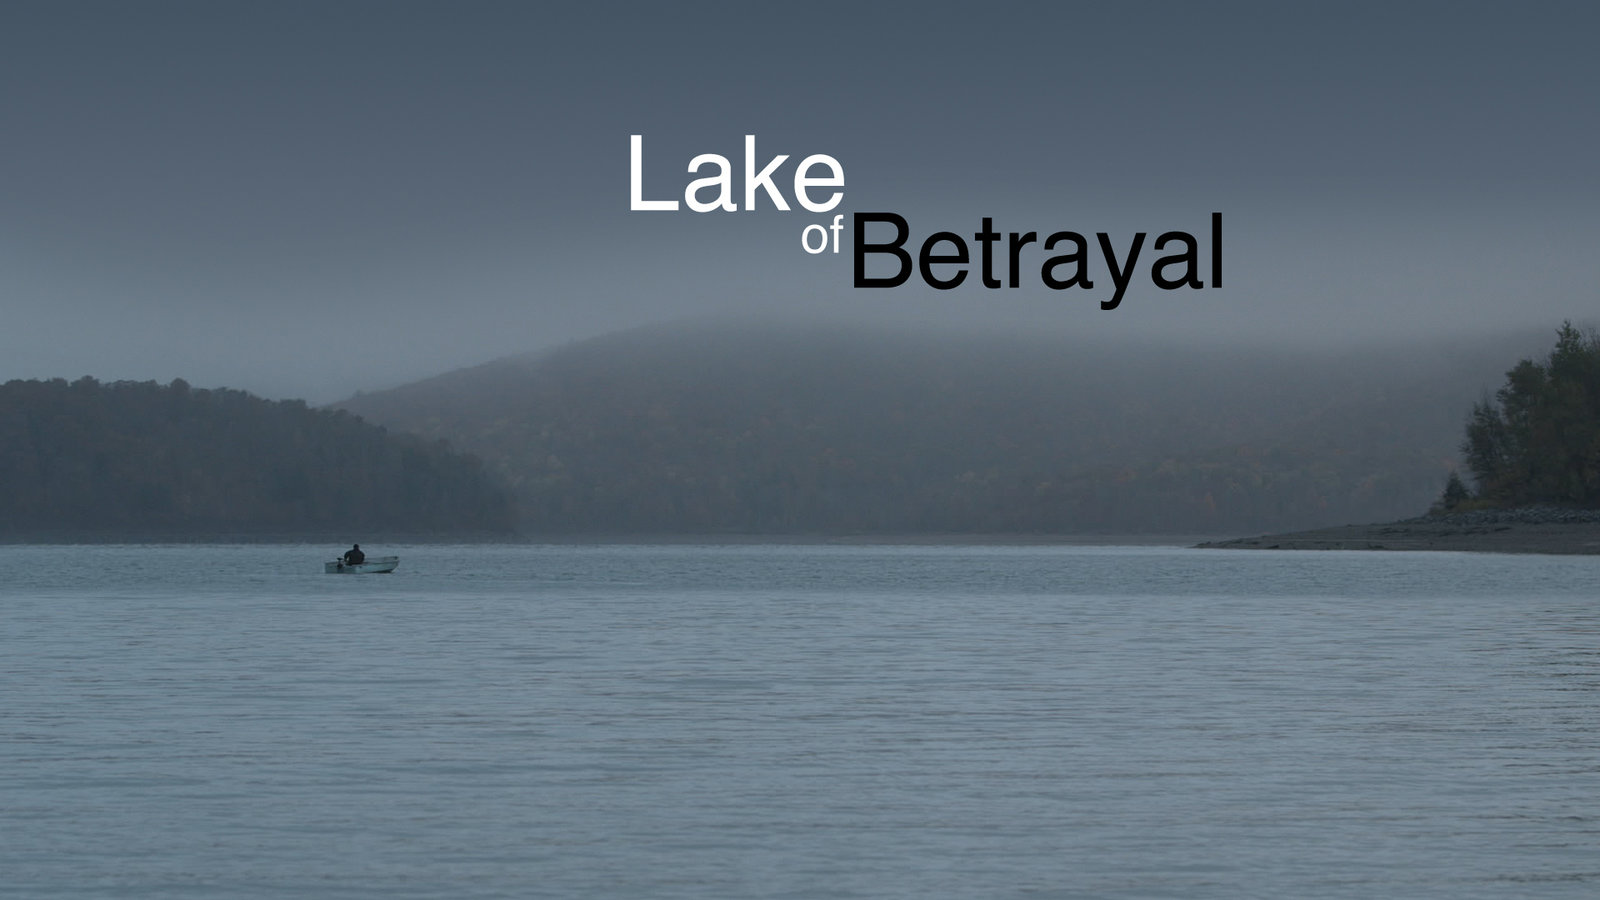 Lake of Betrayal - Seneca People Fighting to Protect Their Ancestral Lands